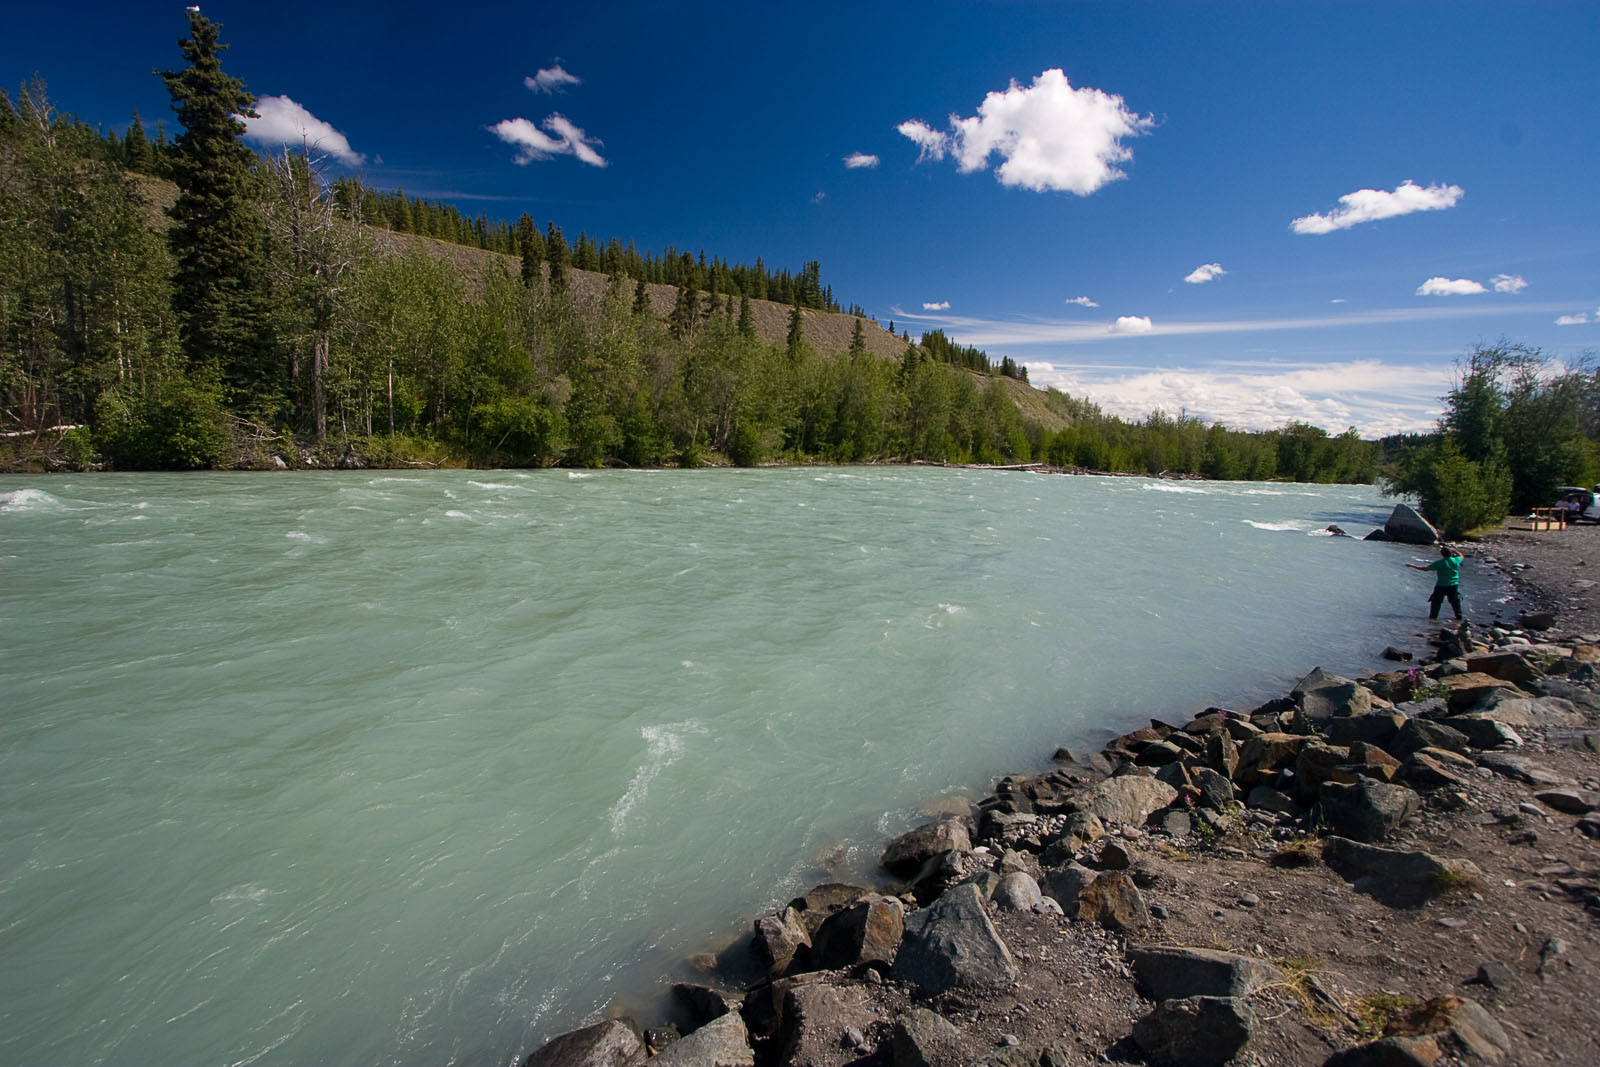 This glacial river's blue-green water is incredibly opaque, but much prettier than the gray-brown of most other glacial rivers.  It is also fishable, though I prefer more clarity. From the Klutina River in Alaska.